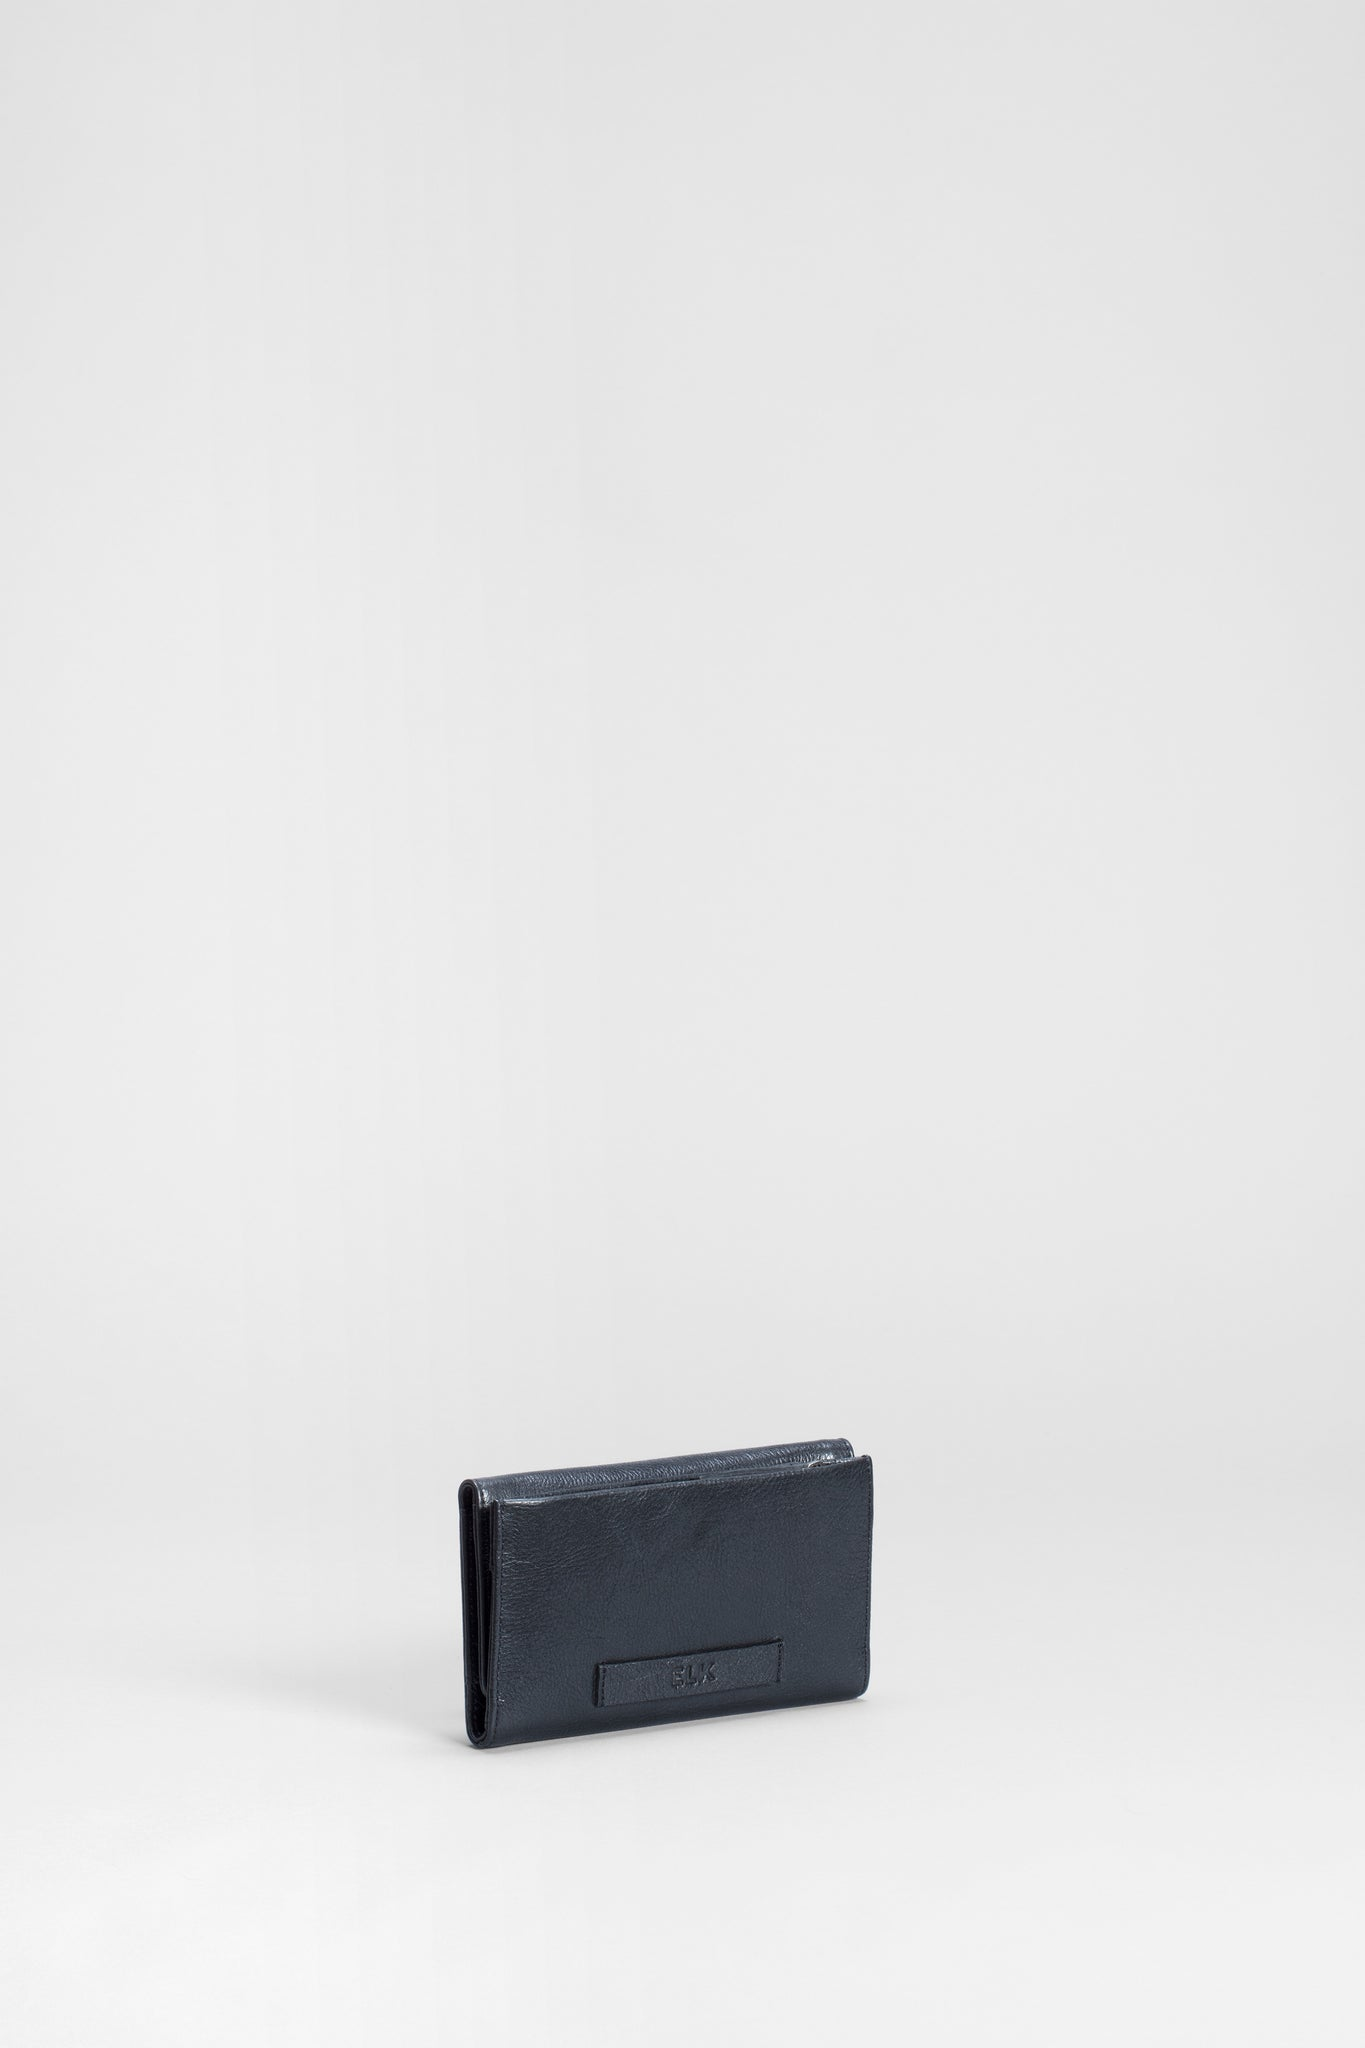 BLACK KULMA WALLET